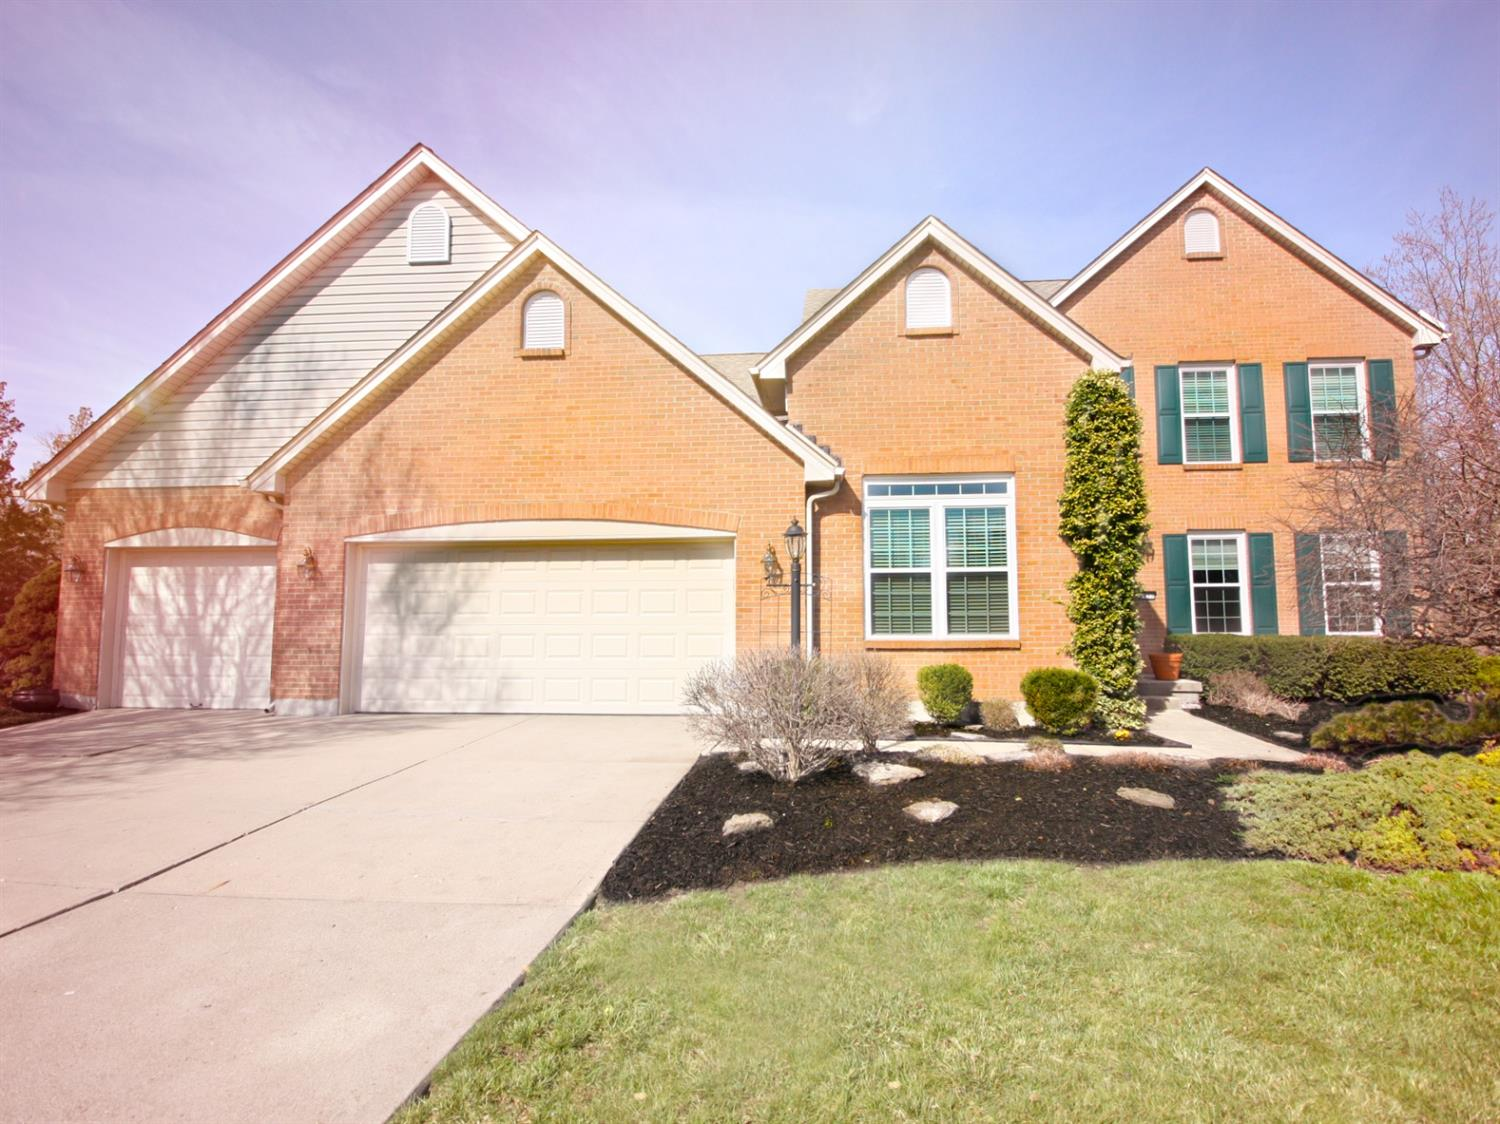 Property for sale at 6977 Berry Blossom Court, Liberty Twp,  Ohio 45011